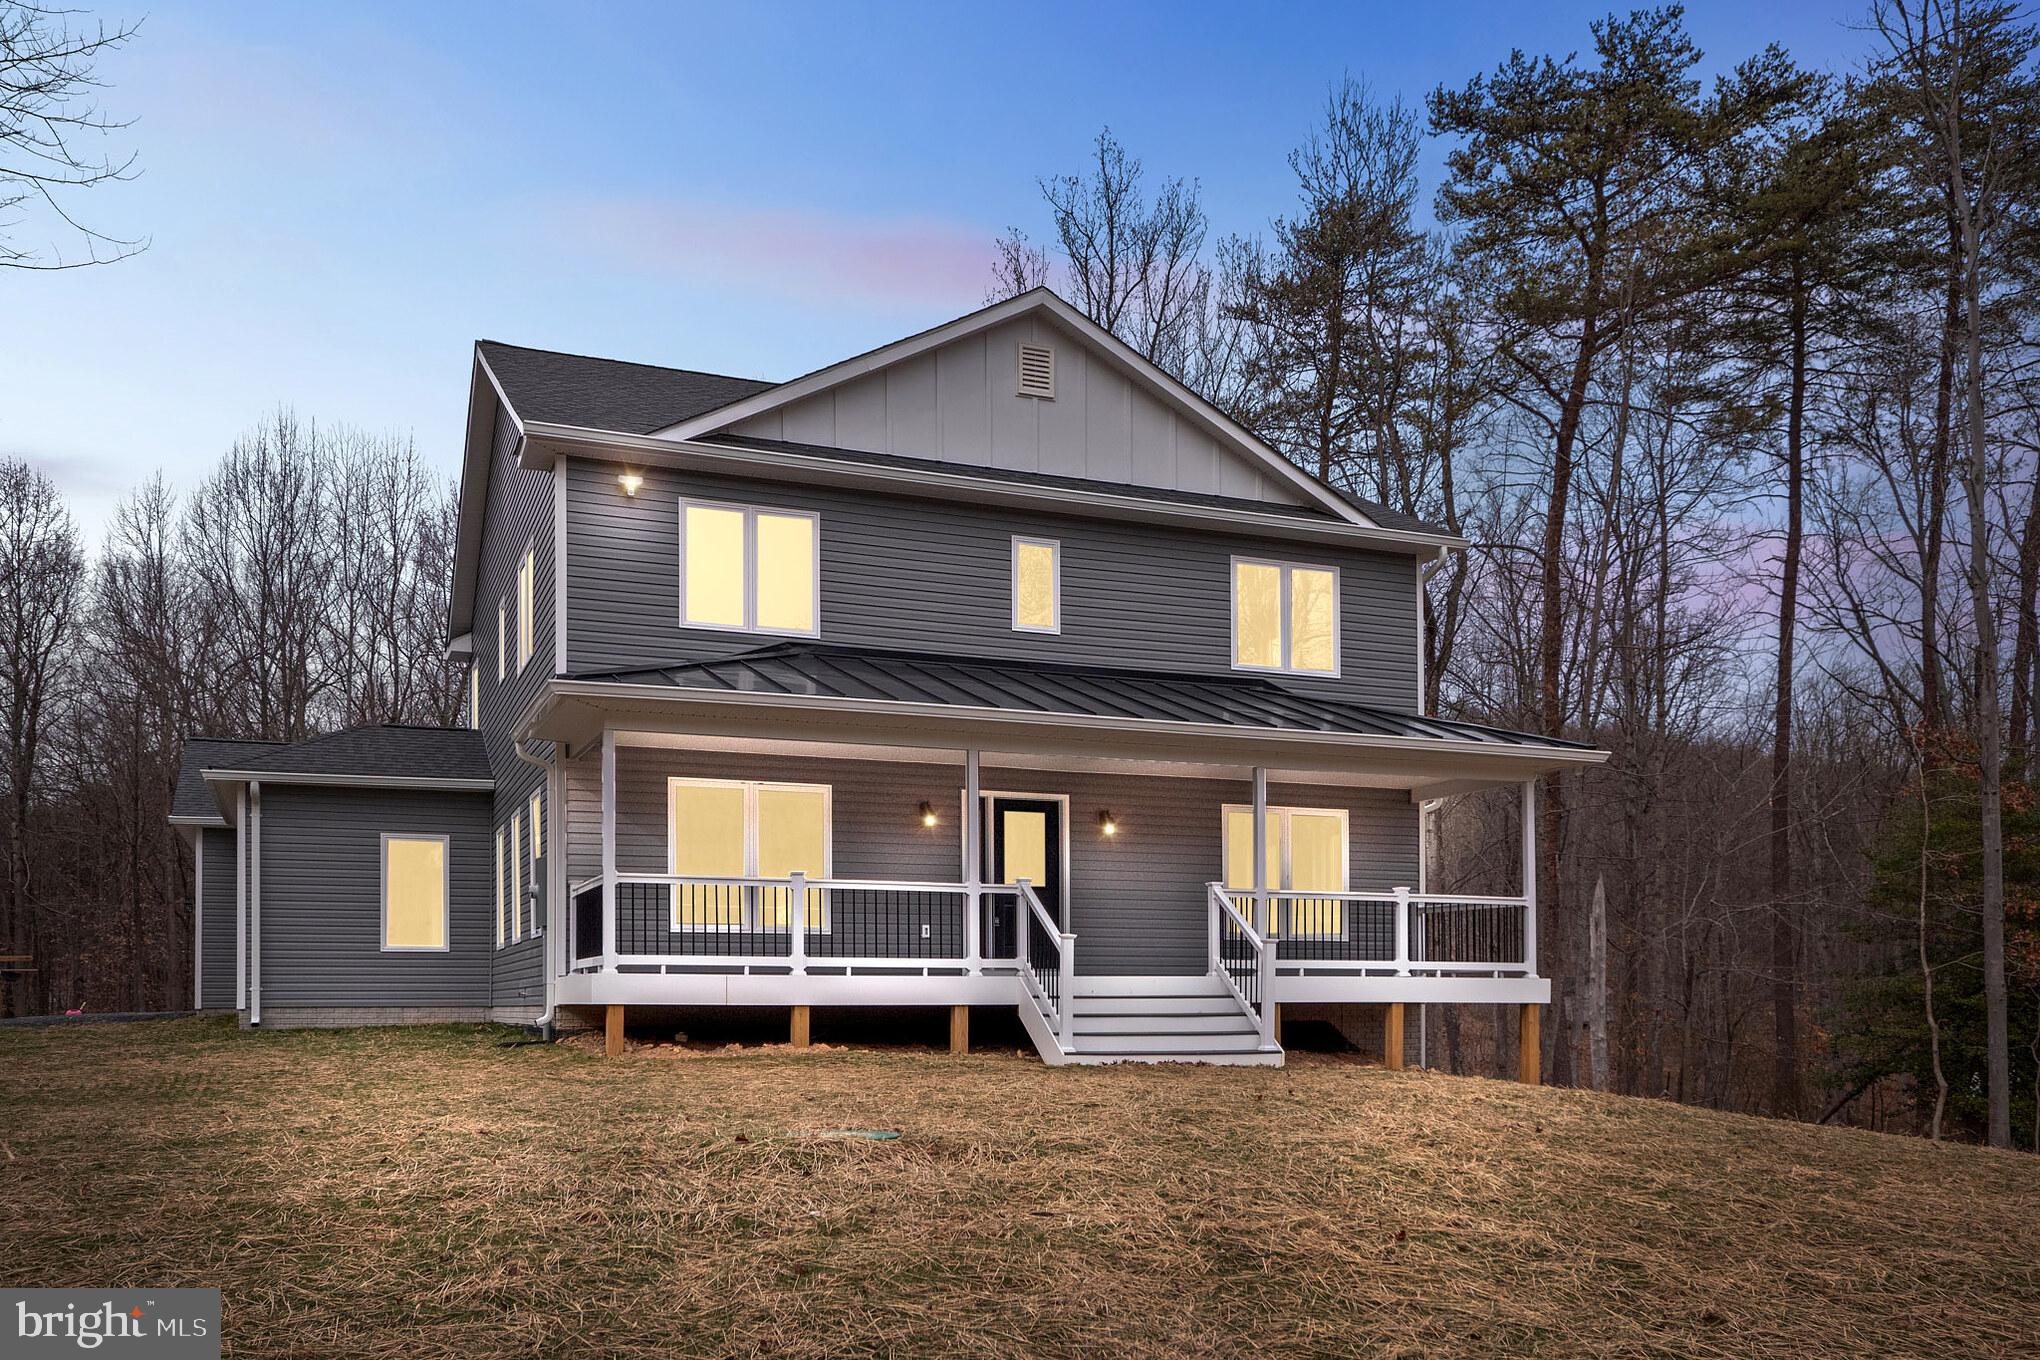 Great new construction home on 4 acres in Bluemont VA. This house offers 4 bedrooms with first floor